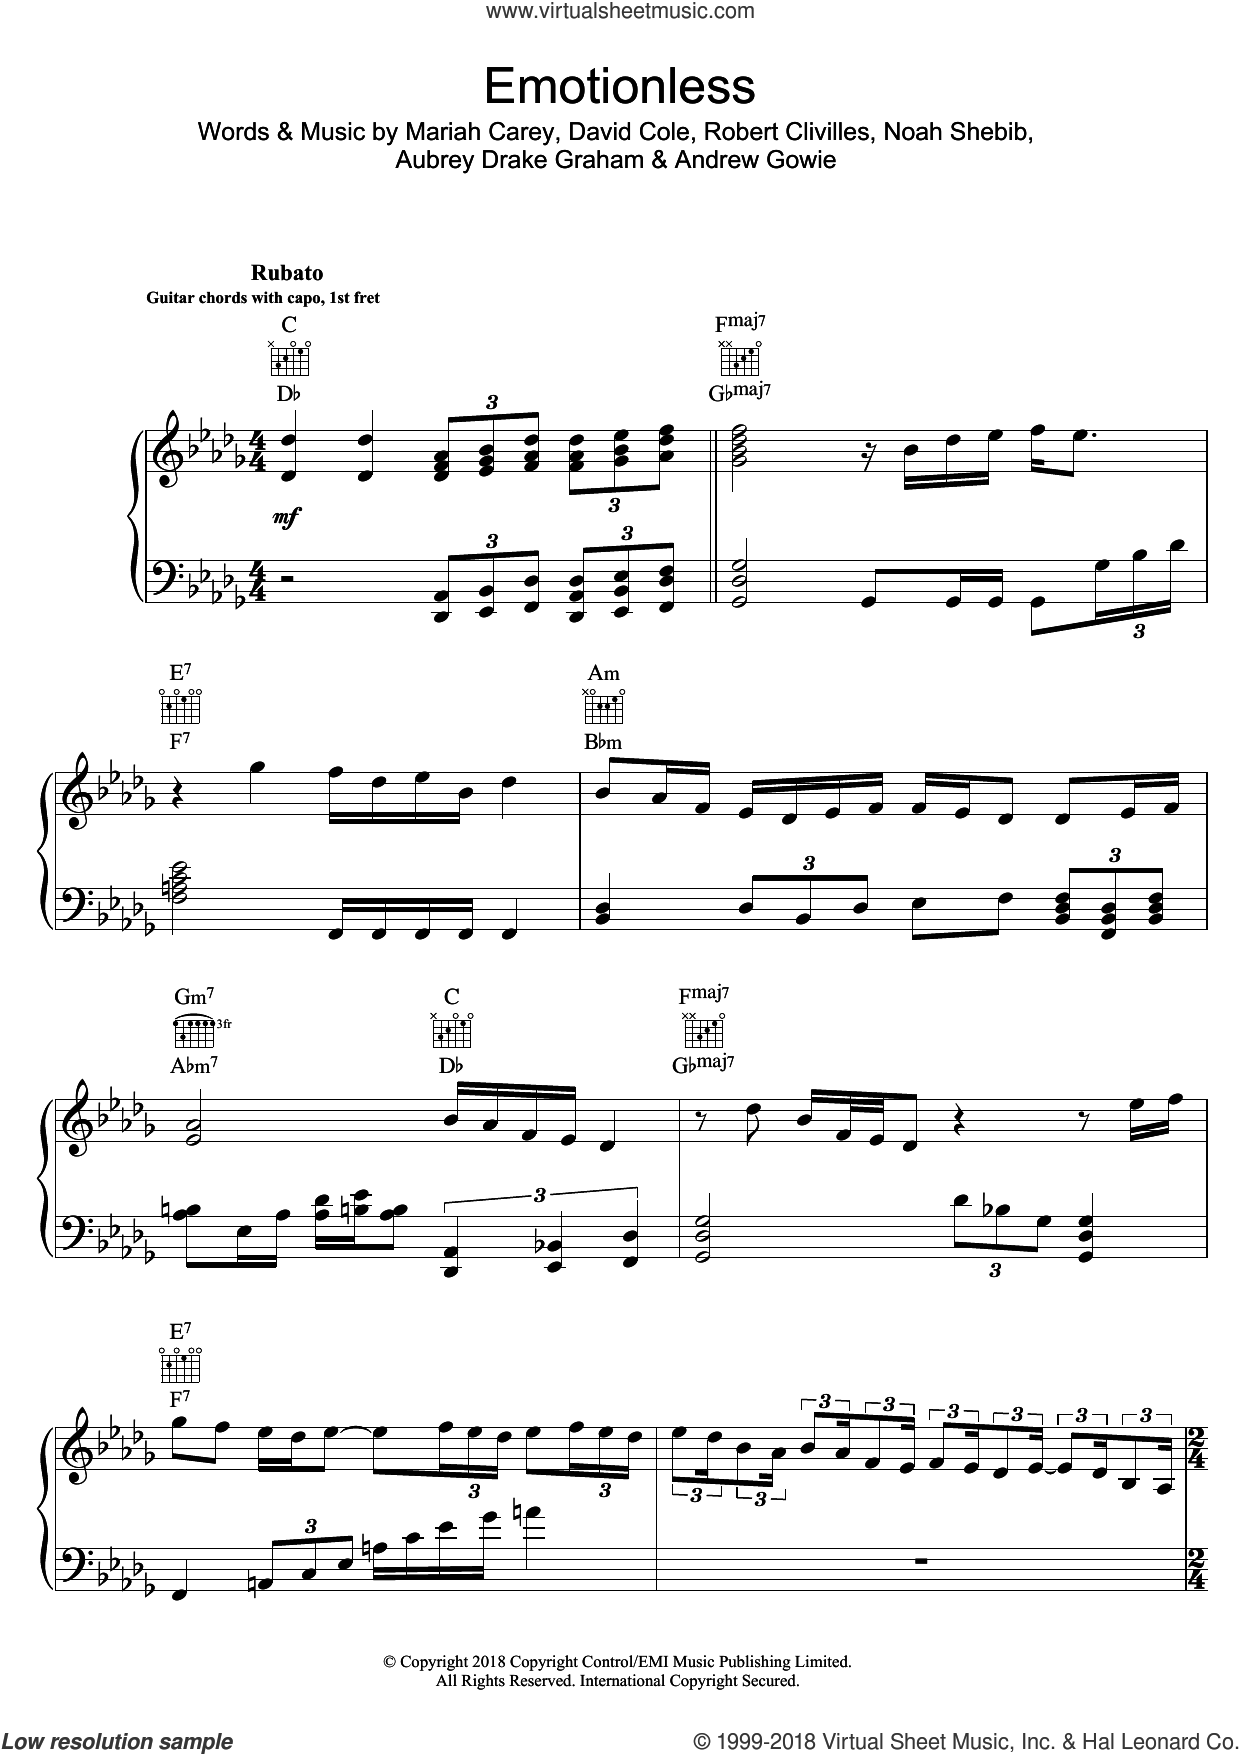 Emotionless sheet music for voice, piano or guitar by Drake, Andrew Gowie, Aubrey Drake Graham, David Cole, Mariah Carey, Noah Shebib and Robert Clivilles, intermediate skill level